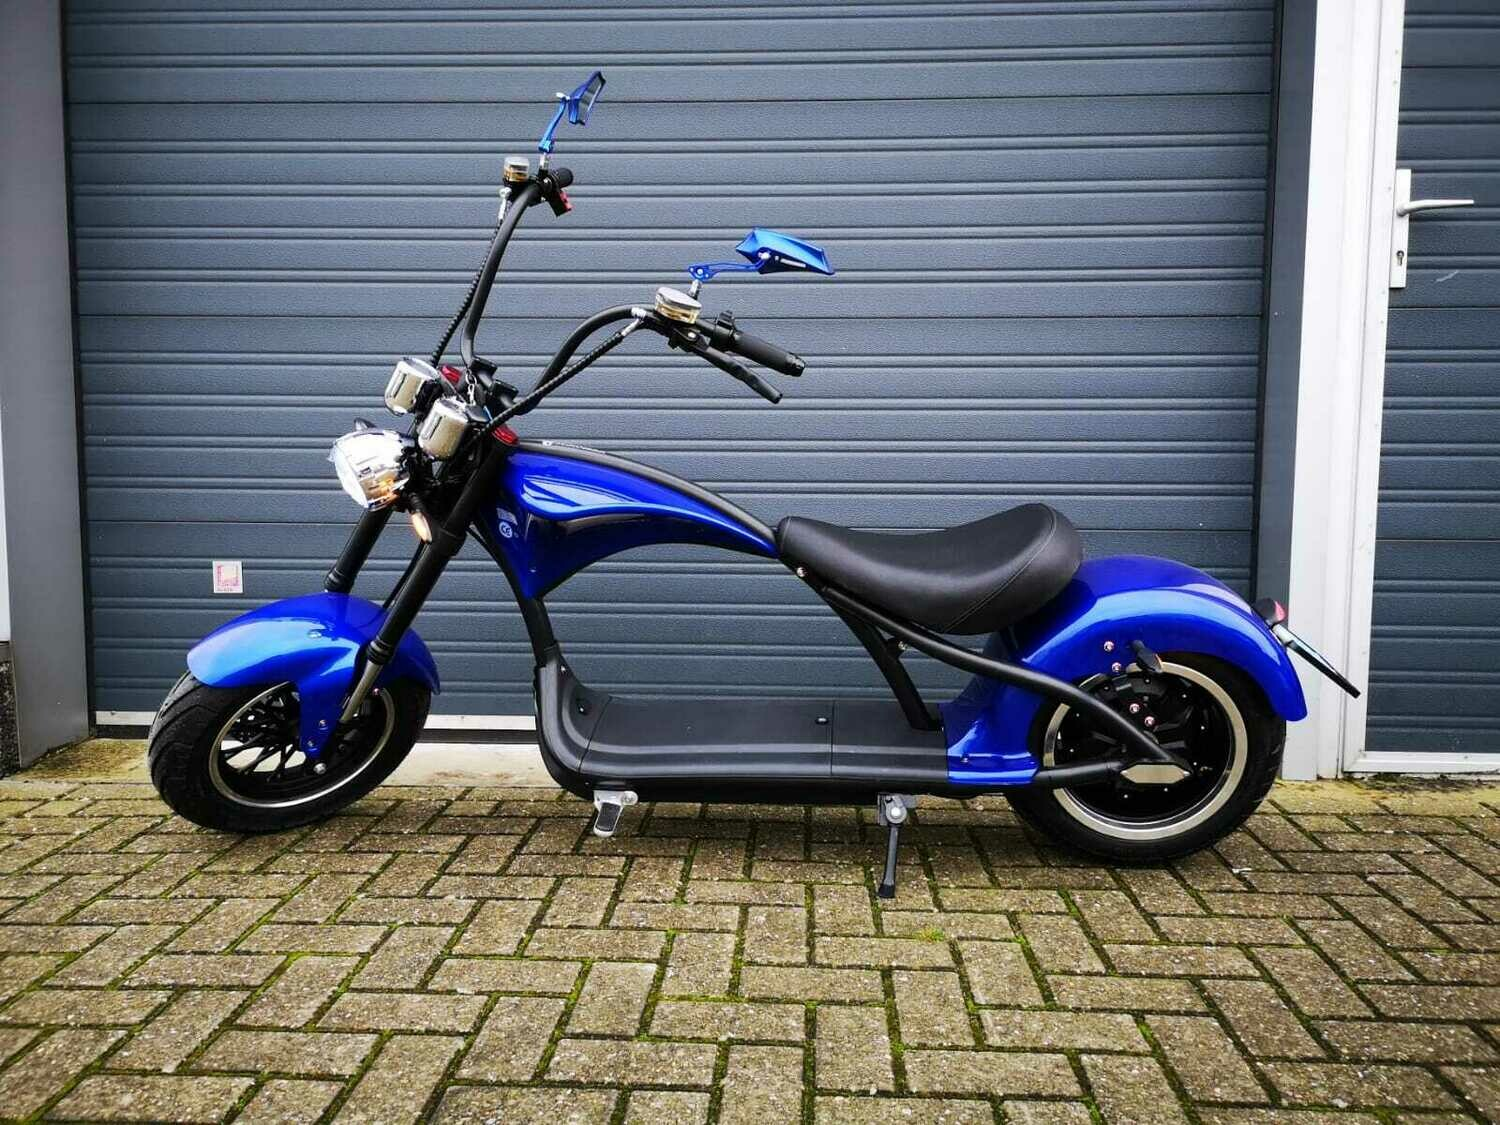 Echopper Metallic Blauw